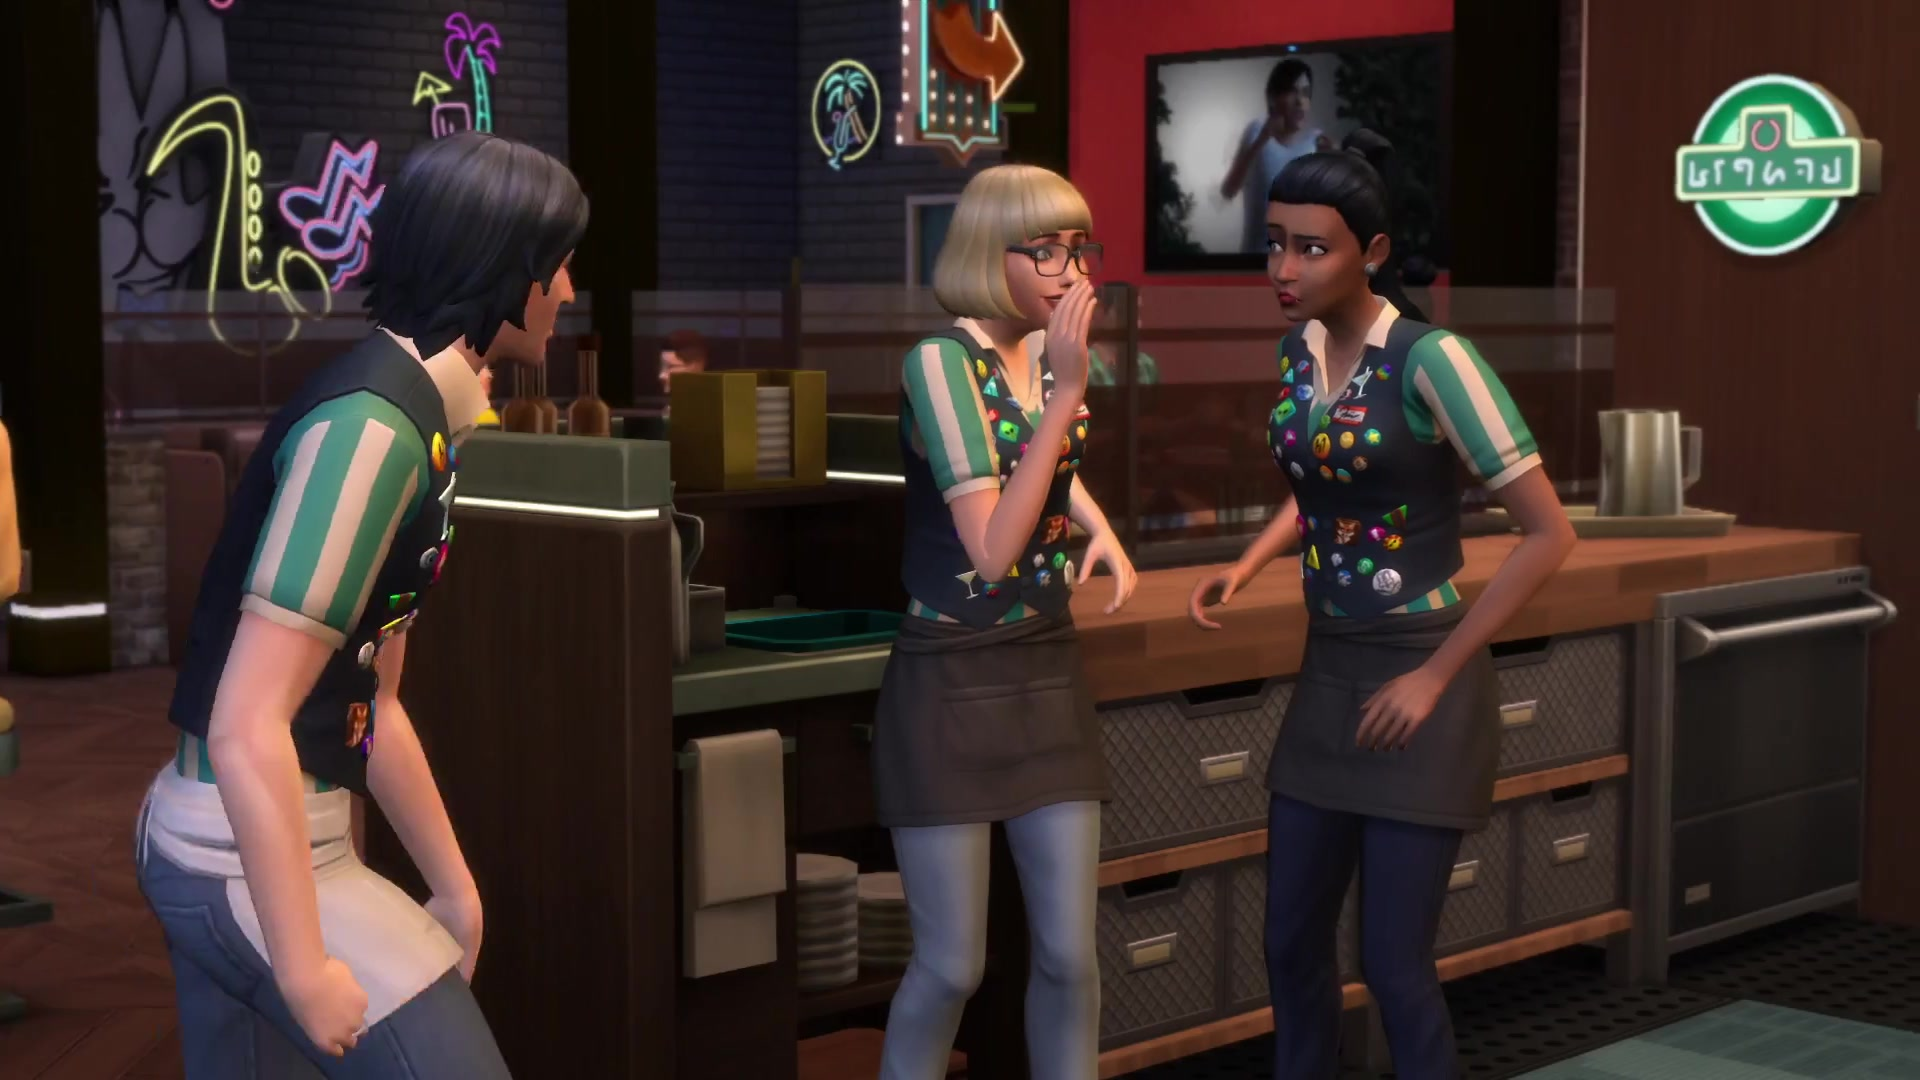 Did ts2 uniform return to ts4 dine out o the sims forums for Online games similar to sims